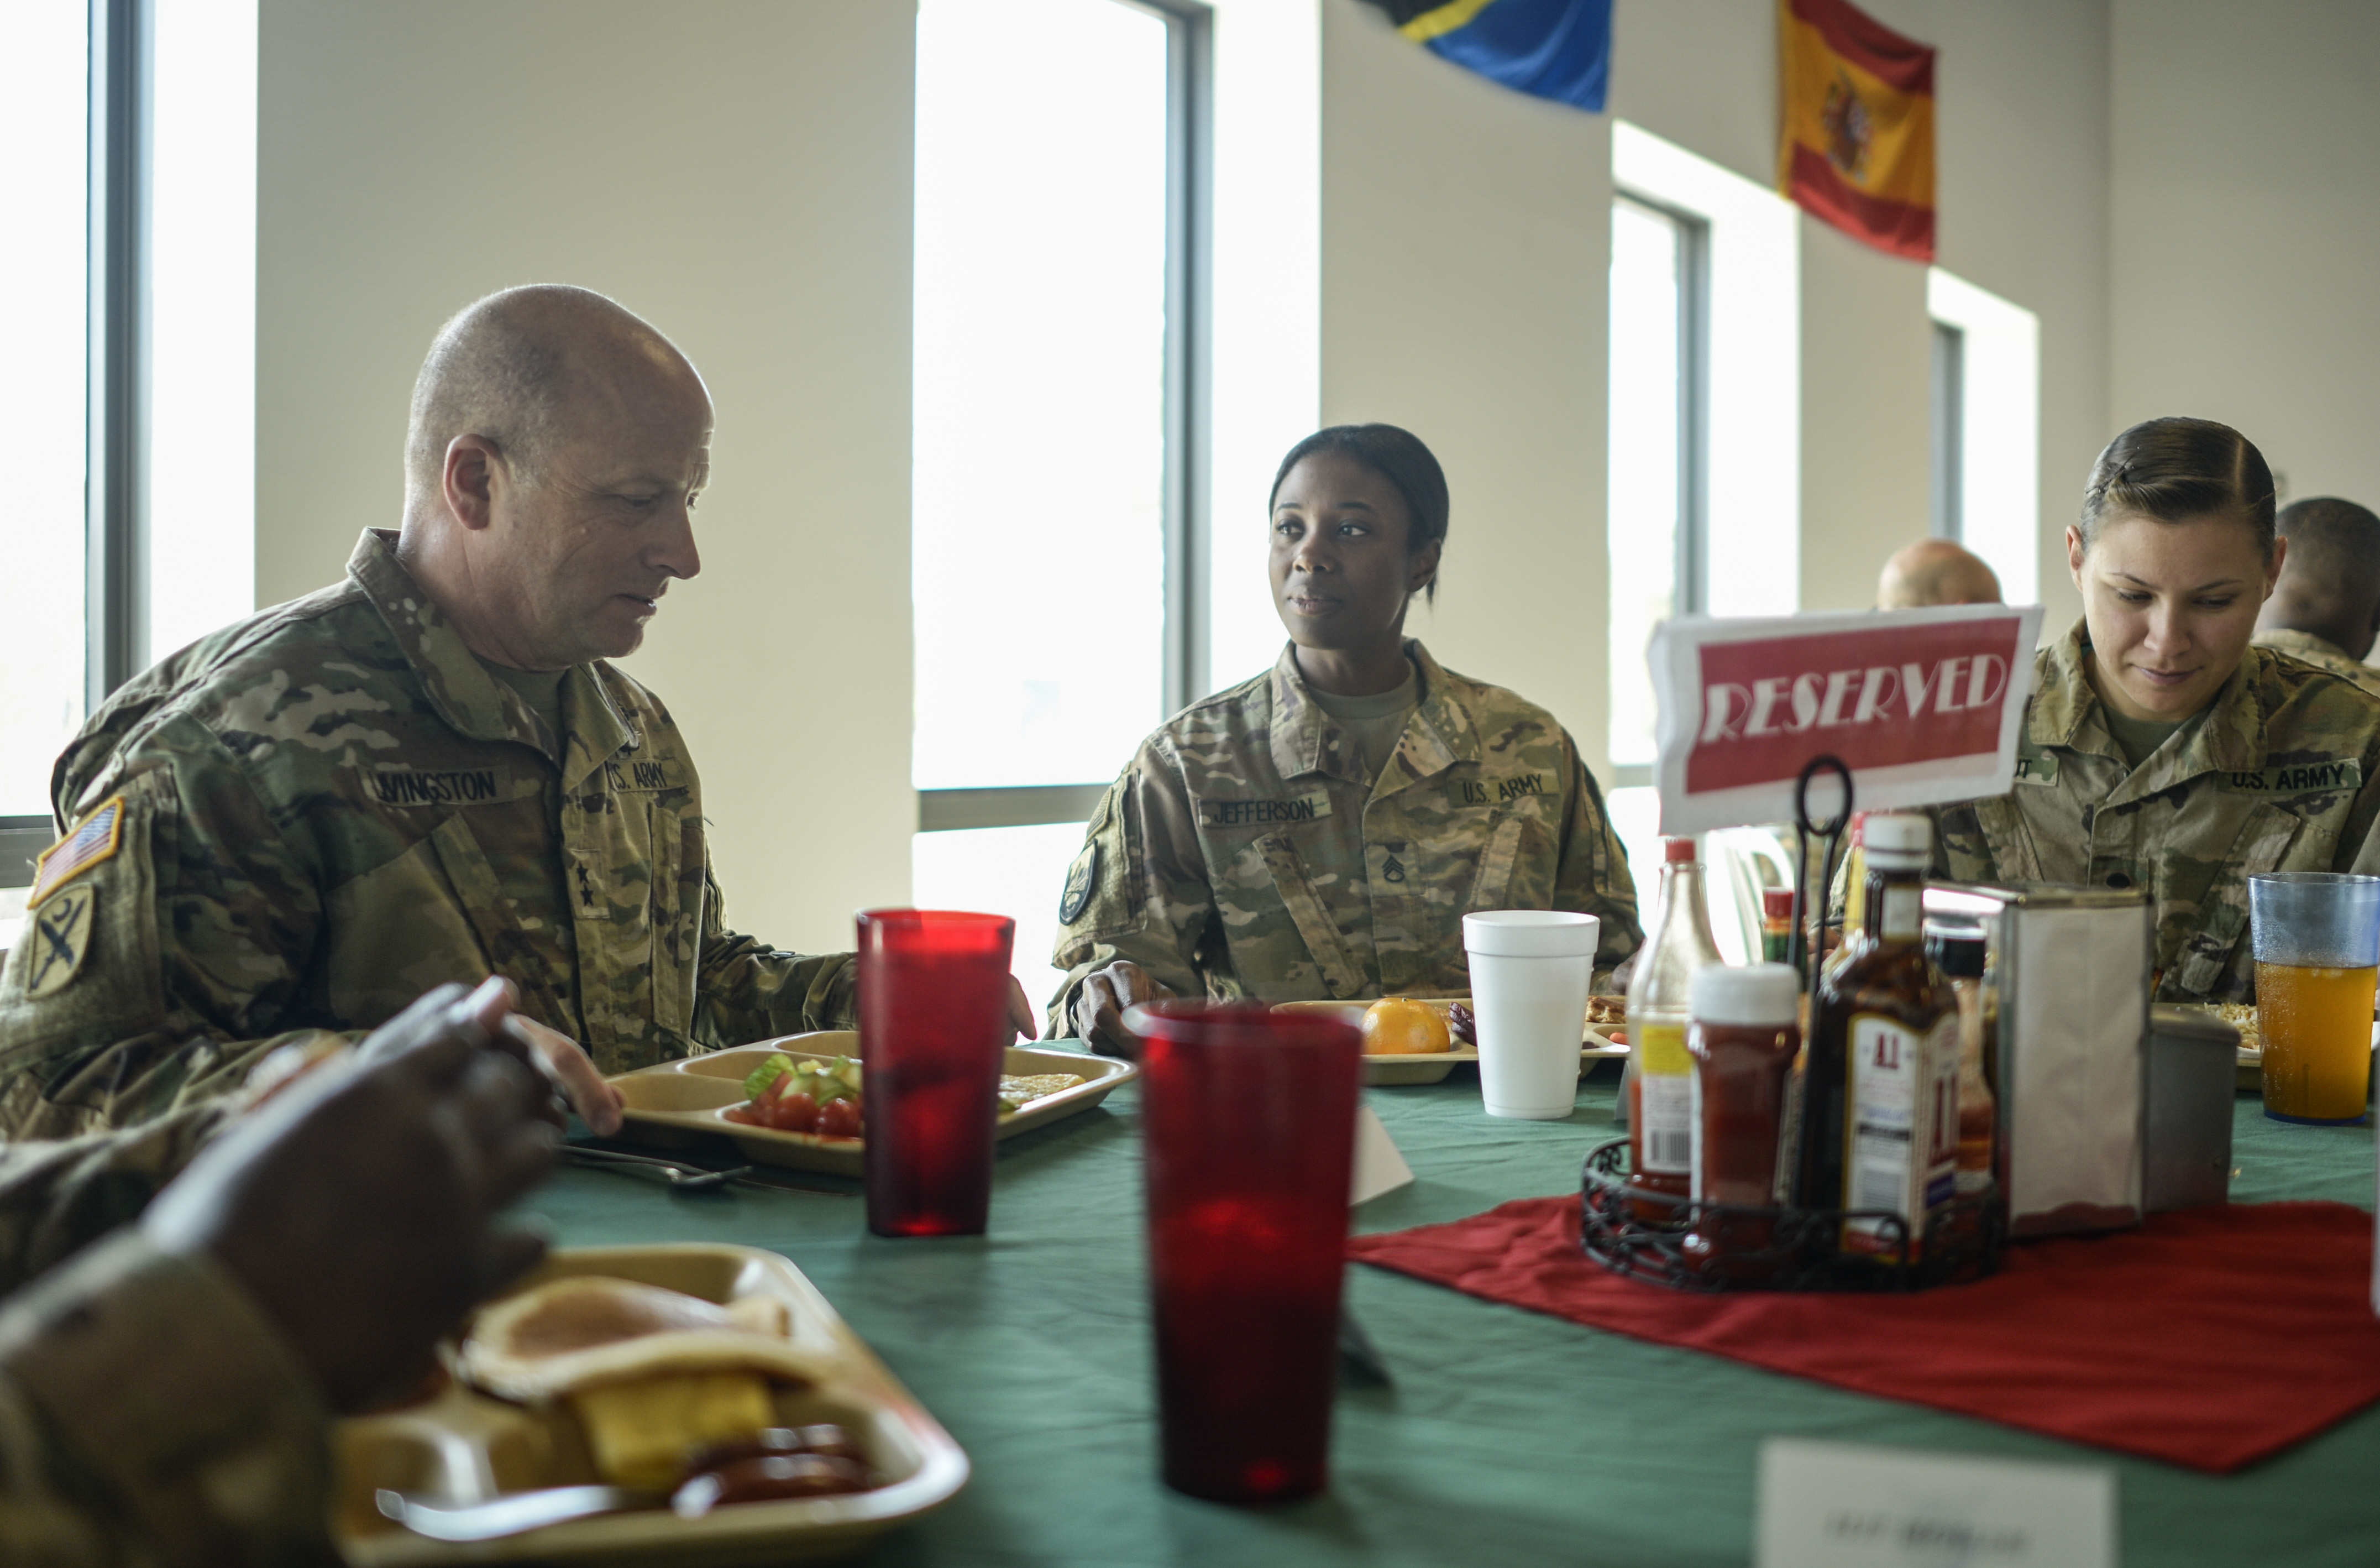 The South Carolina National Guard Adjutant General Maj. General Robert E. Livingston, Jr. has brunch with troops from the 151st Signal Battalion during his visit to Camp Lemonnier, Djibouti, Jan. 15, 2017. Maj. Gen. Livingston travelled to Camp Lemonnier to engage with deployed South Carolina National Guard members, and learn more about their role in supporting the mission of U.S. Africa Command. (U.S. Air National Guard photo by: SSgt Christian Jadot)